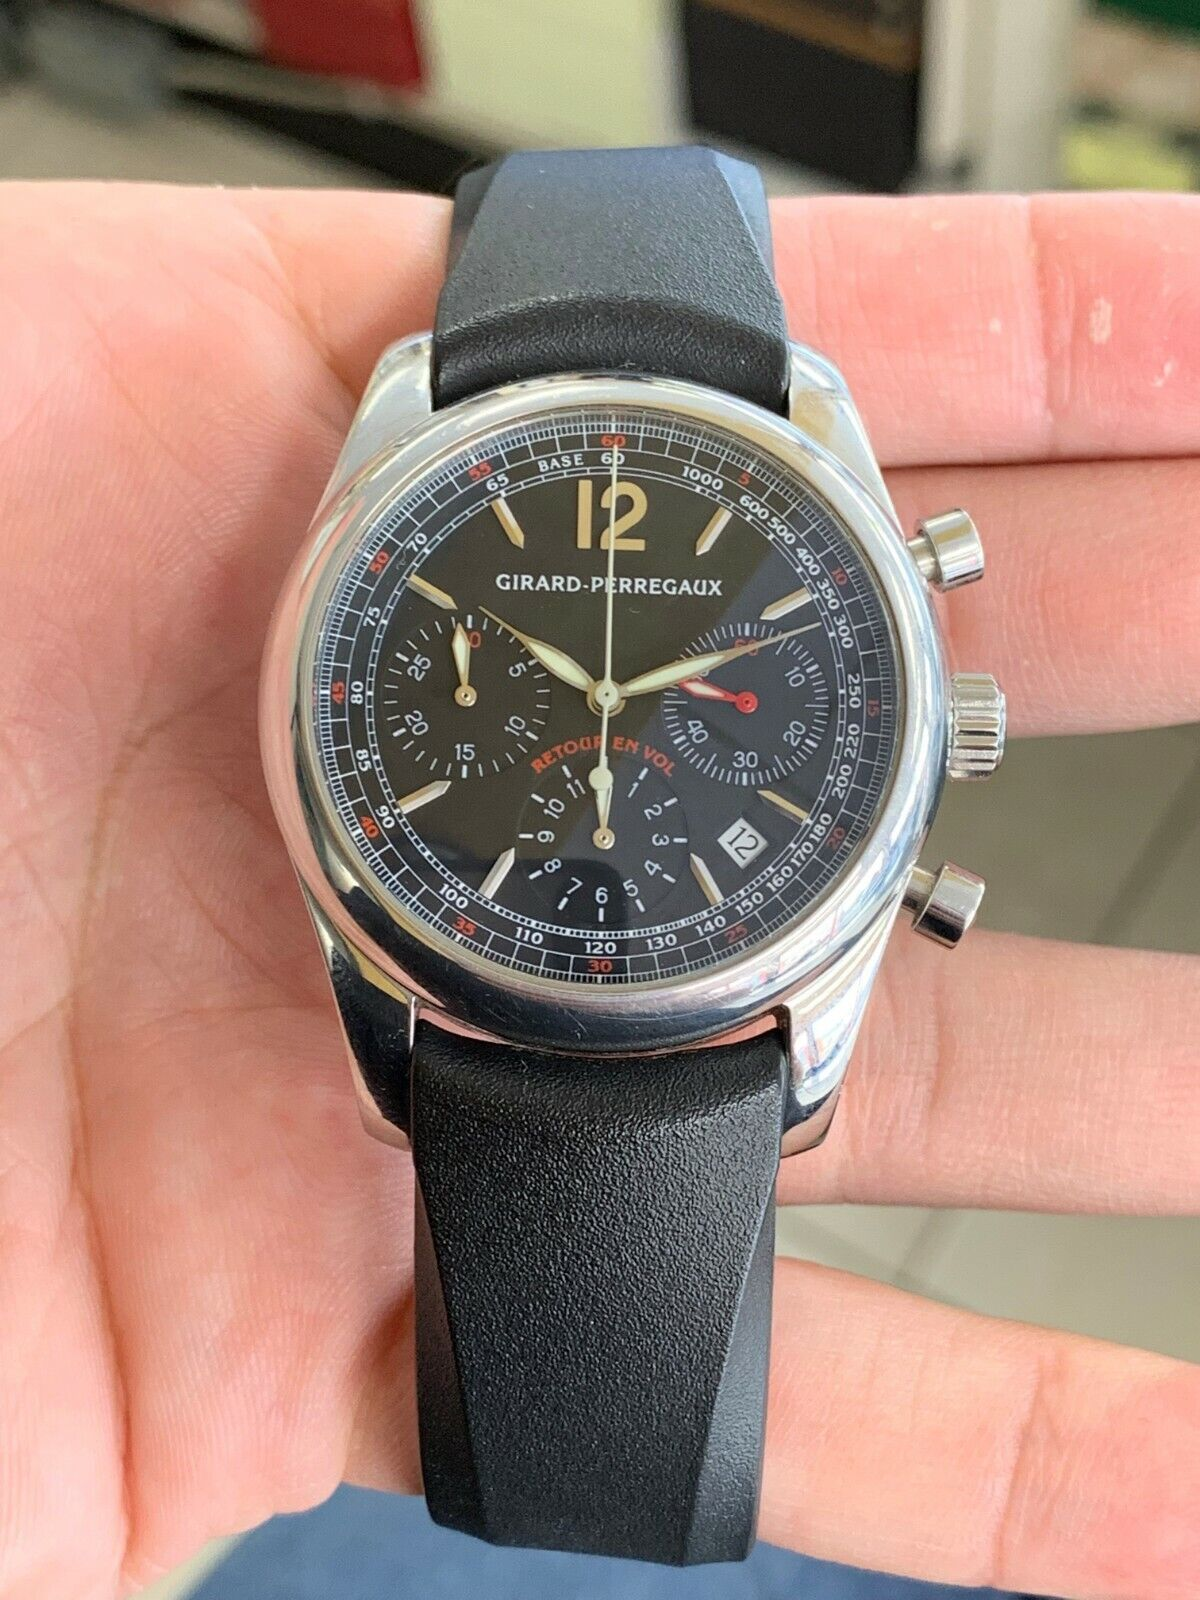 Girard Perregaux Flyback Chronograph Automatic Black Dial Reference: 4958 - watch picture 1